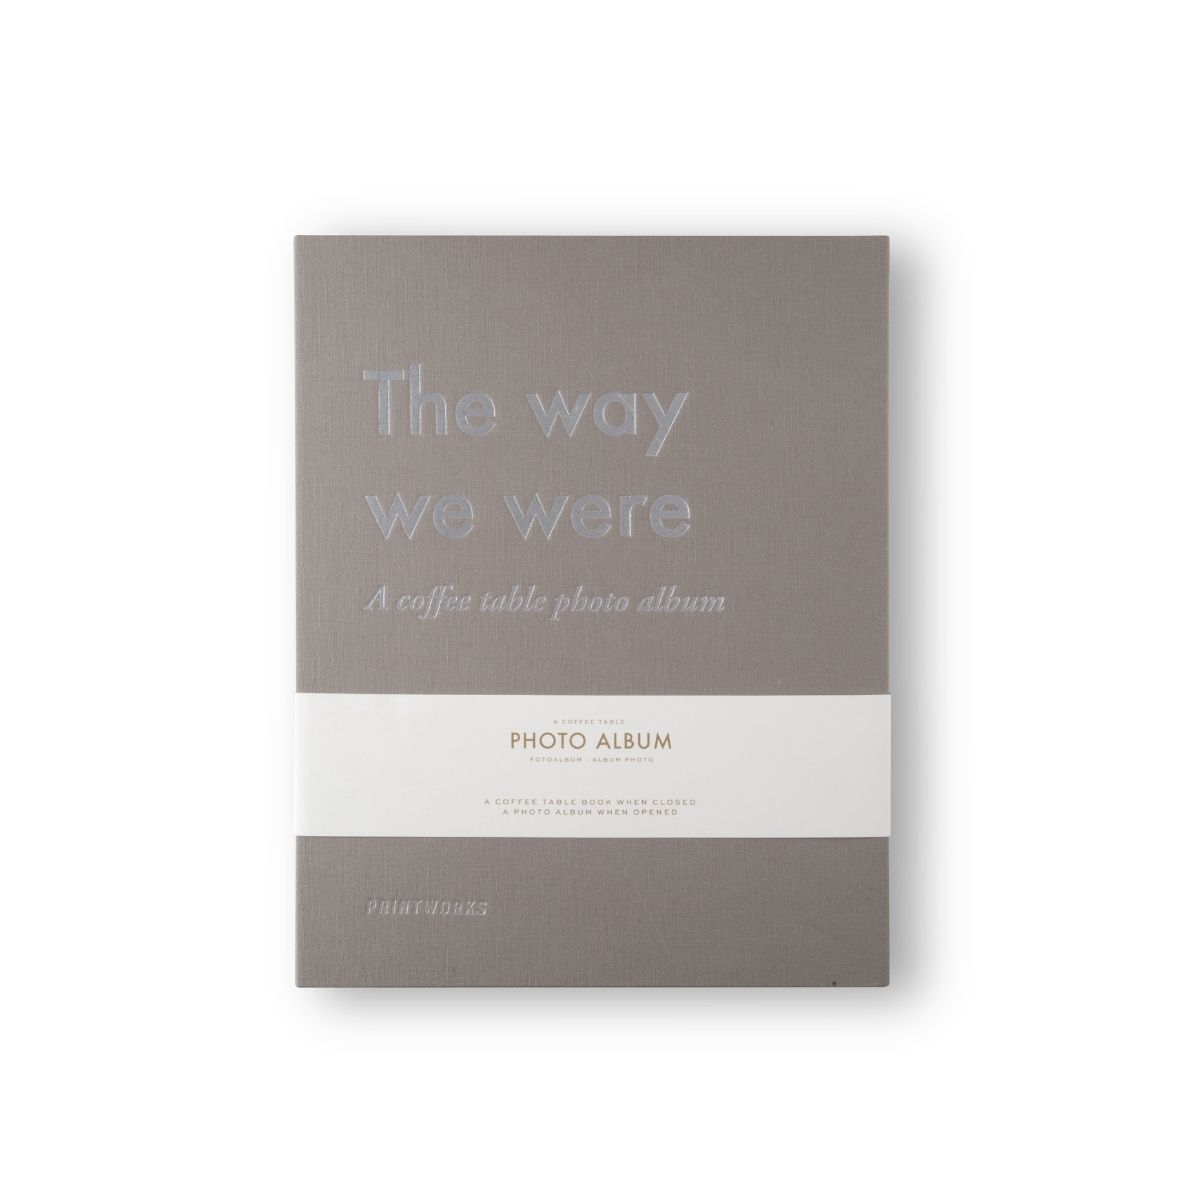 Album - The way we were